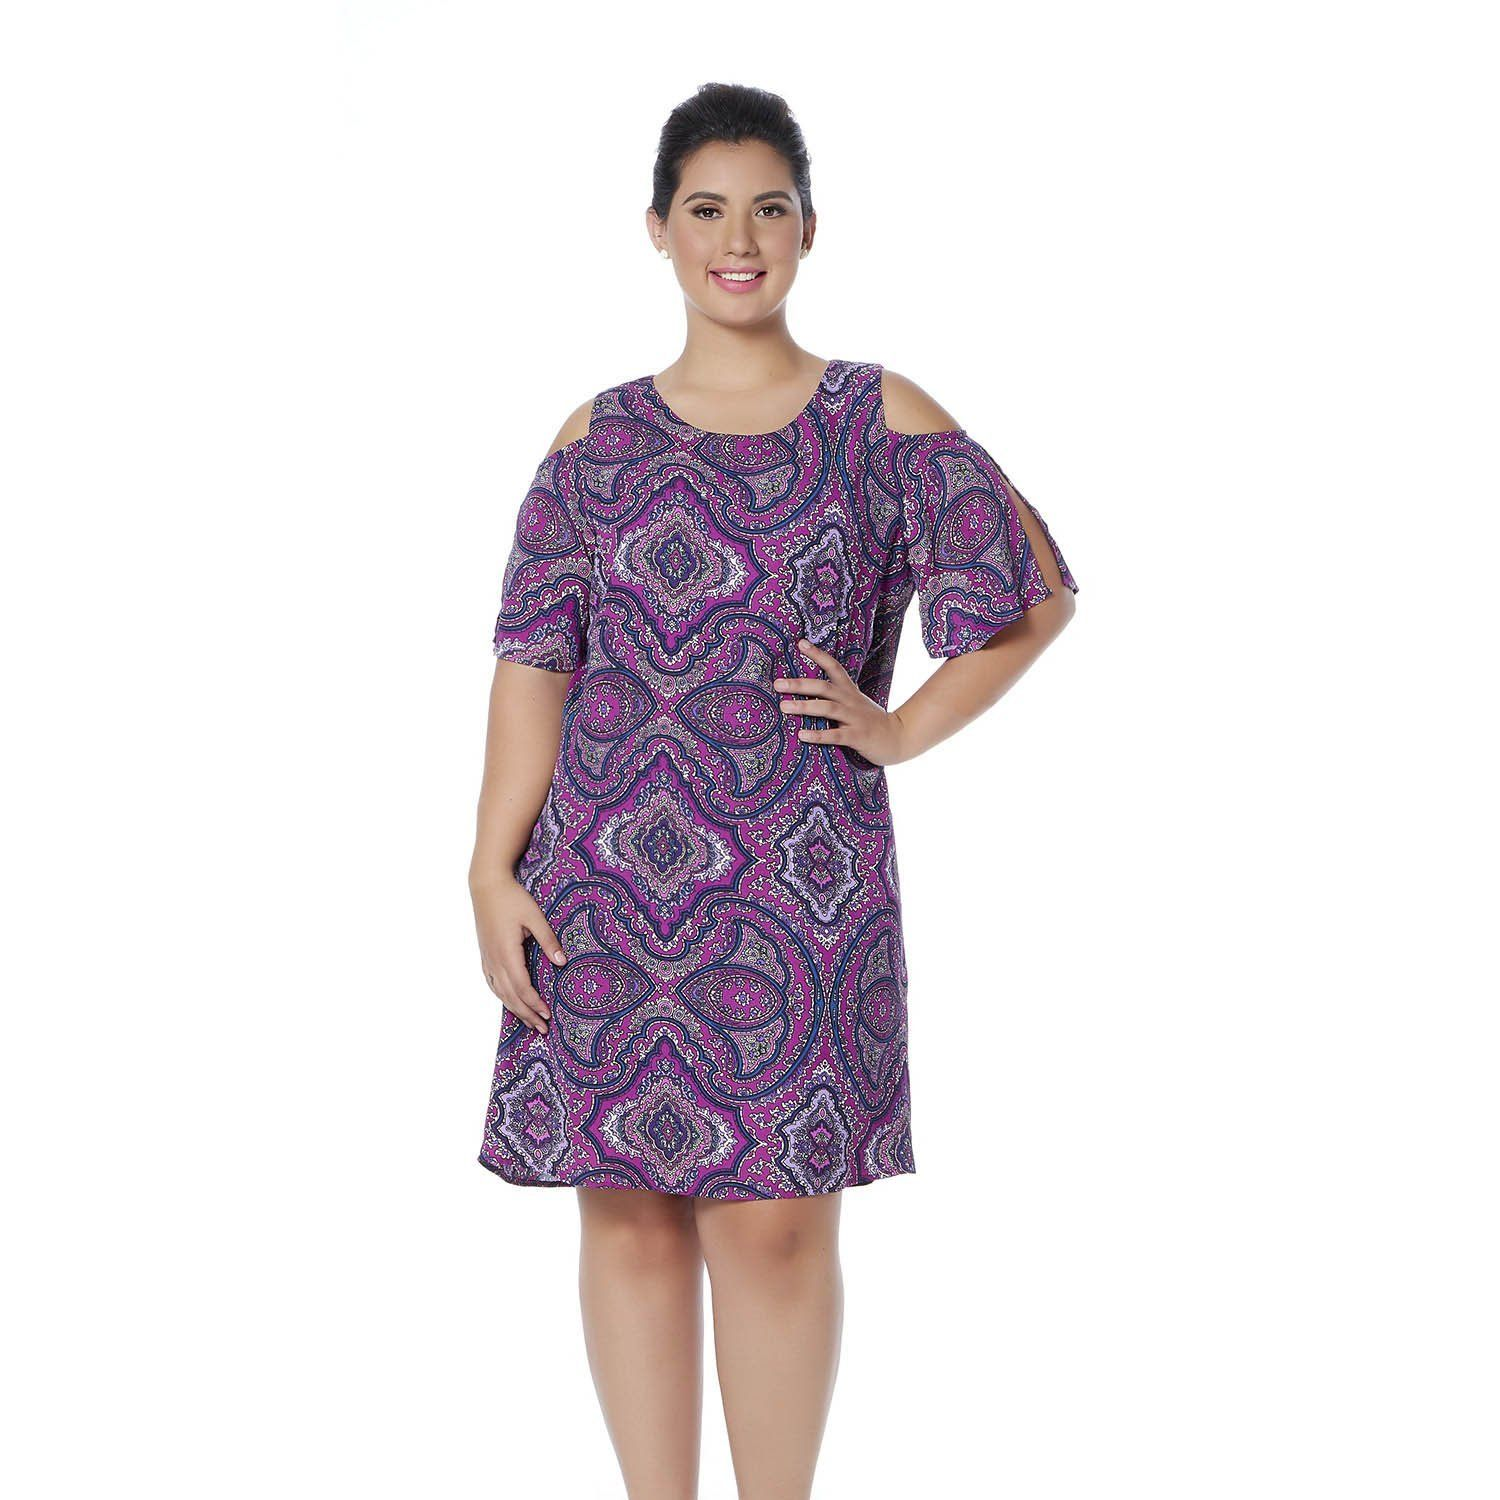 010-692 Vestido Dama Terra - Morado | Products | Pinterest | Damas